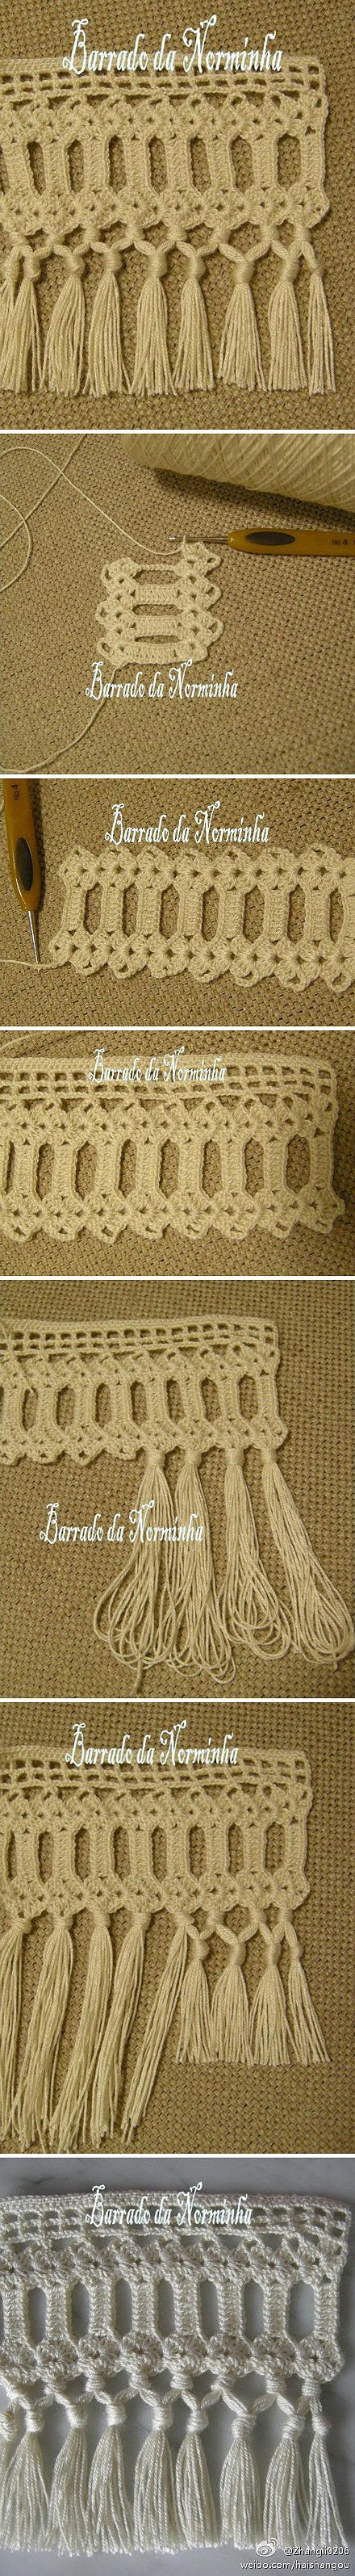 beautiful edging crochet